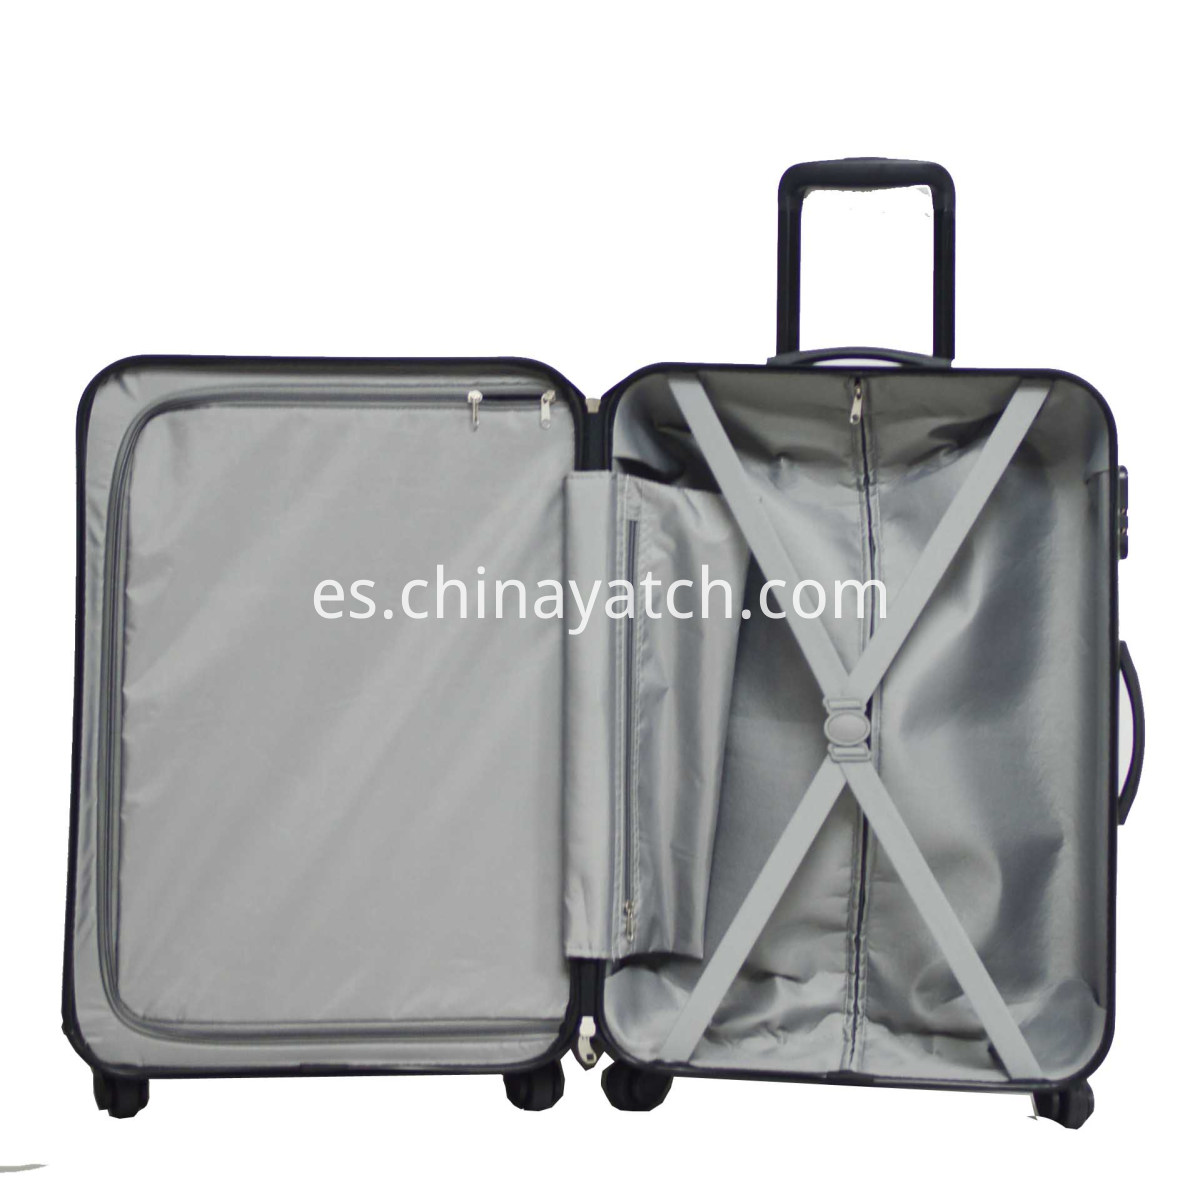 alloy luggage lining